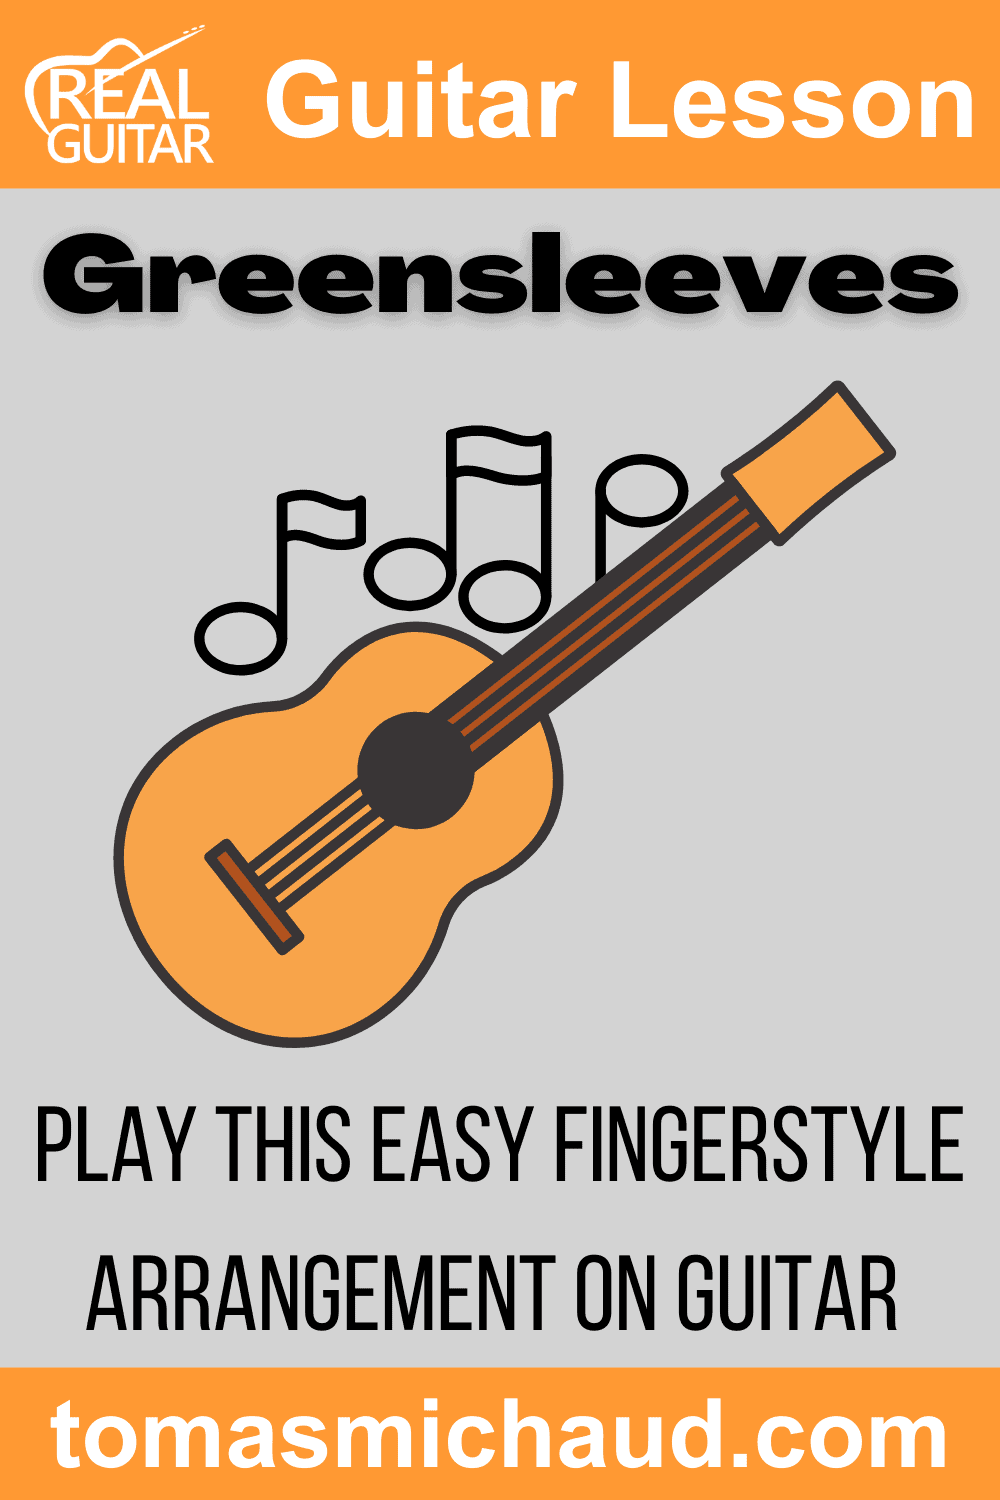 Greensleeves: Play This Fingerstyle Arrangement On Guitar